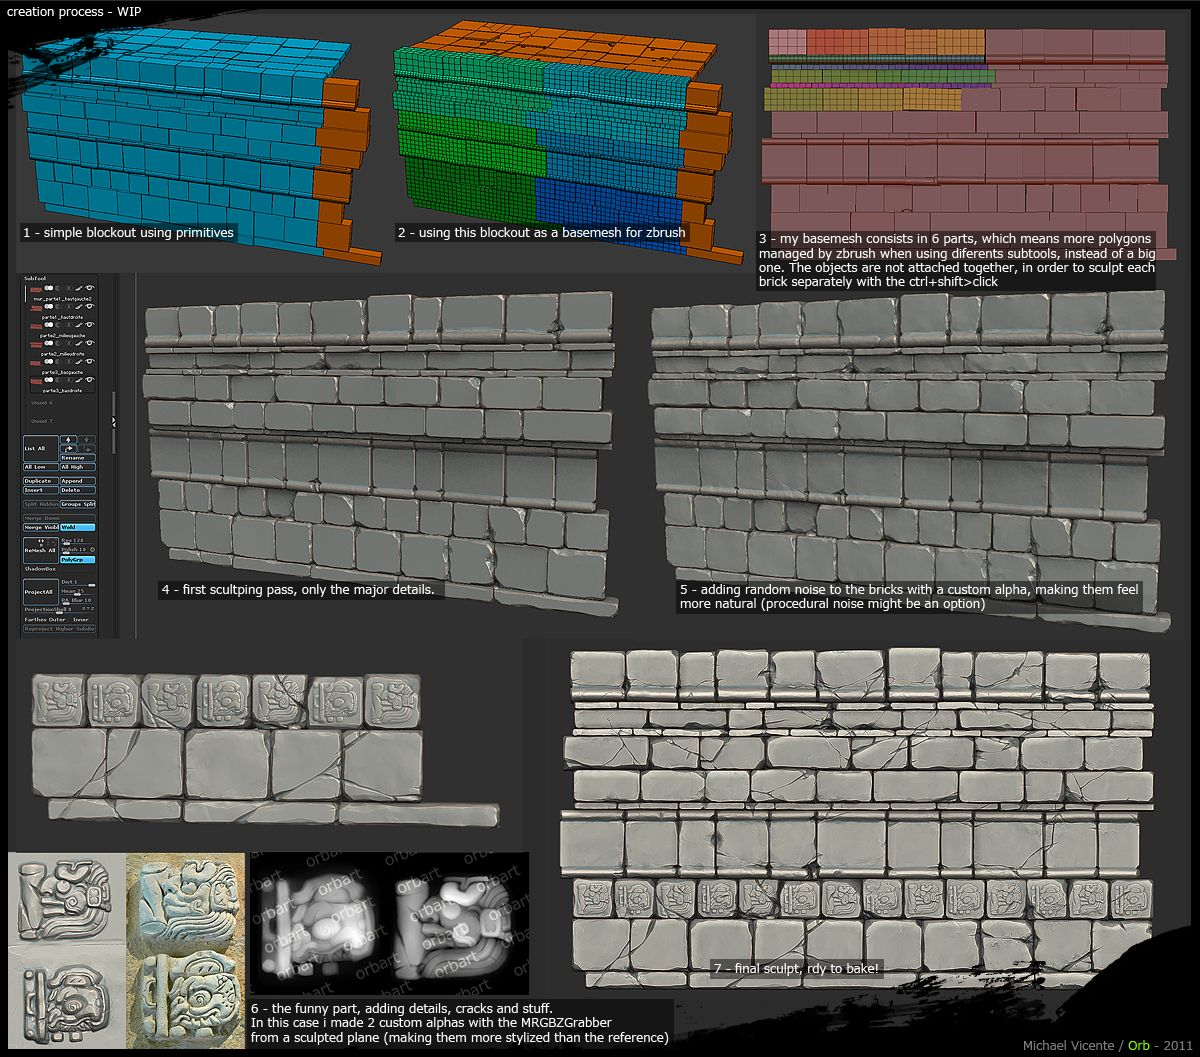 ::LINK:: Orb's Brick Stone Creation - http://www.polycount.com/forum/showthread.php?p=1321690#post132169